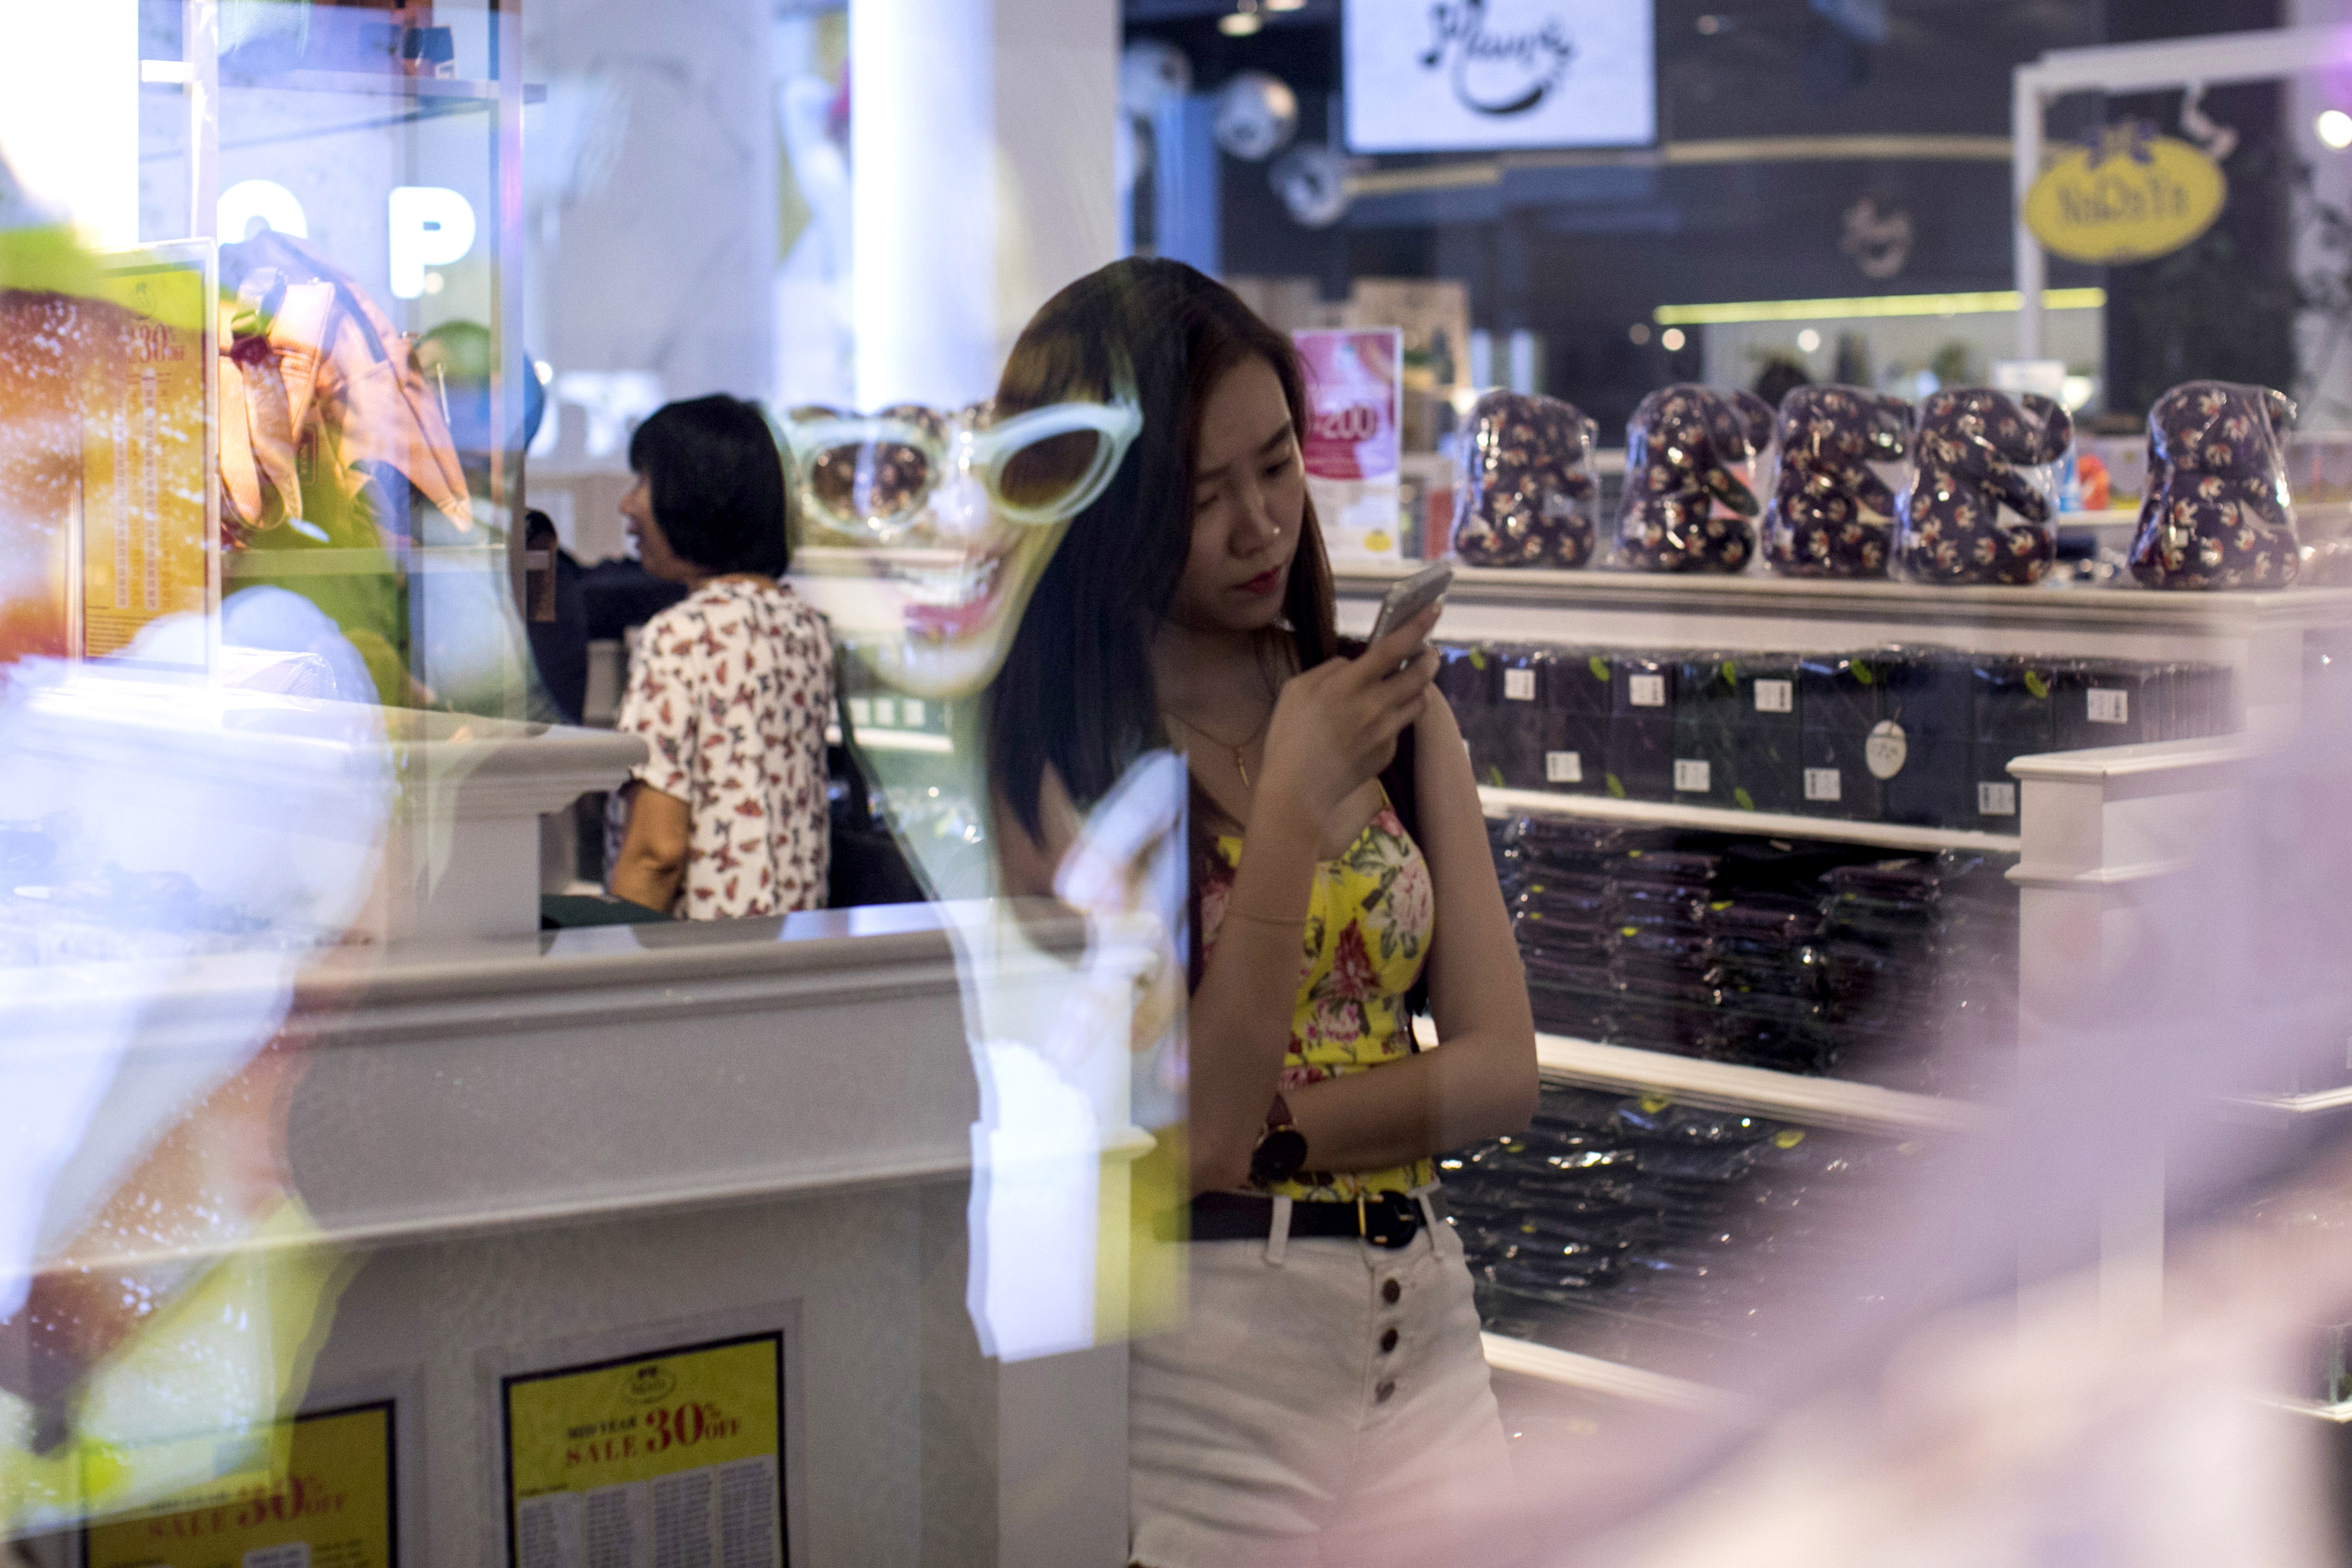 A shopper looks at a smartphone at a mall in Bangkok, Thailand, on Saturday, June 16, 2018. By 2020, more than half of the world's population will be